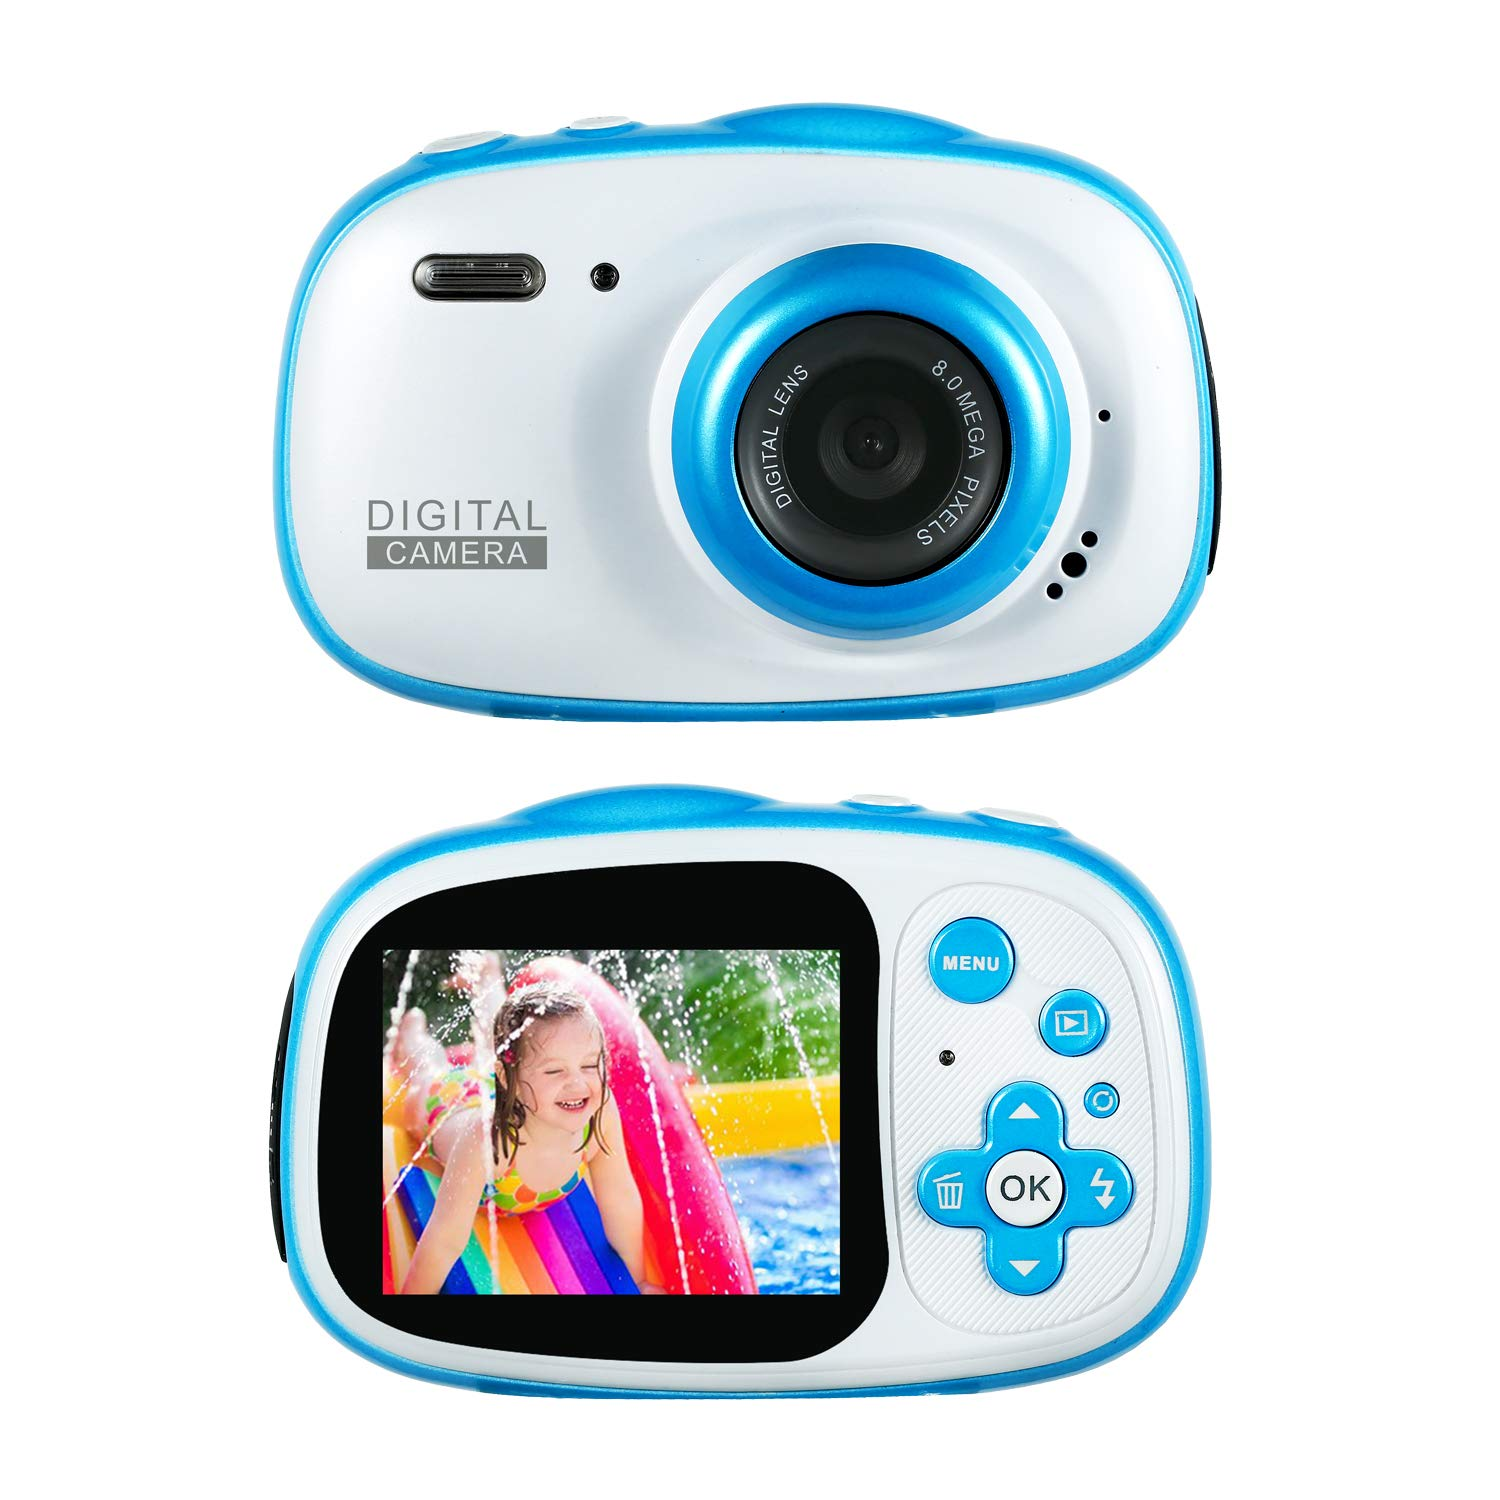 Kids Waterproof Camera Rechargeable Digital for 4-10 Year Old Children, 8MP HD Underwater Action Camera Camcorder with 2-inch LCD Display, MP3/MP4, Games, 16G Memory Card (Blue)